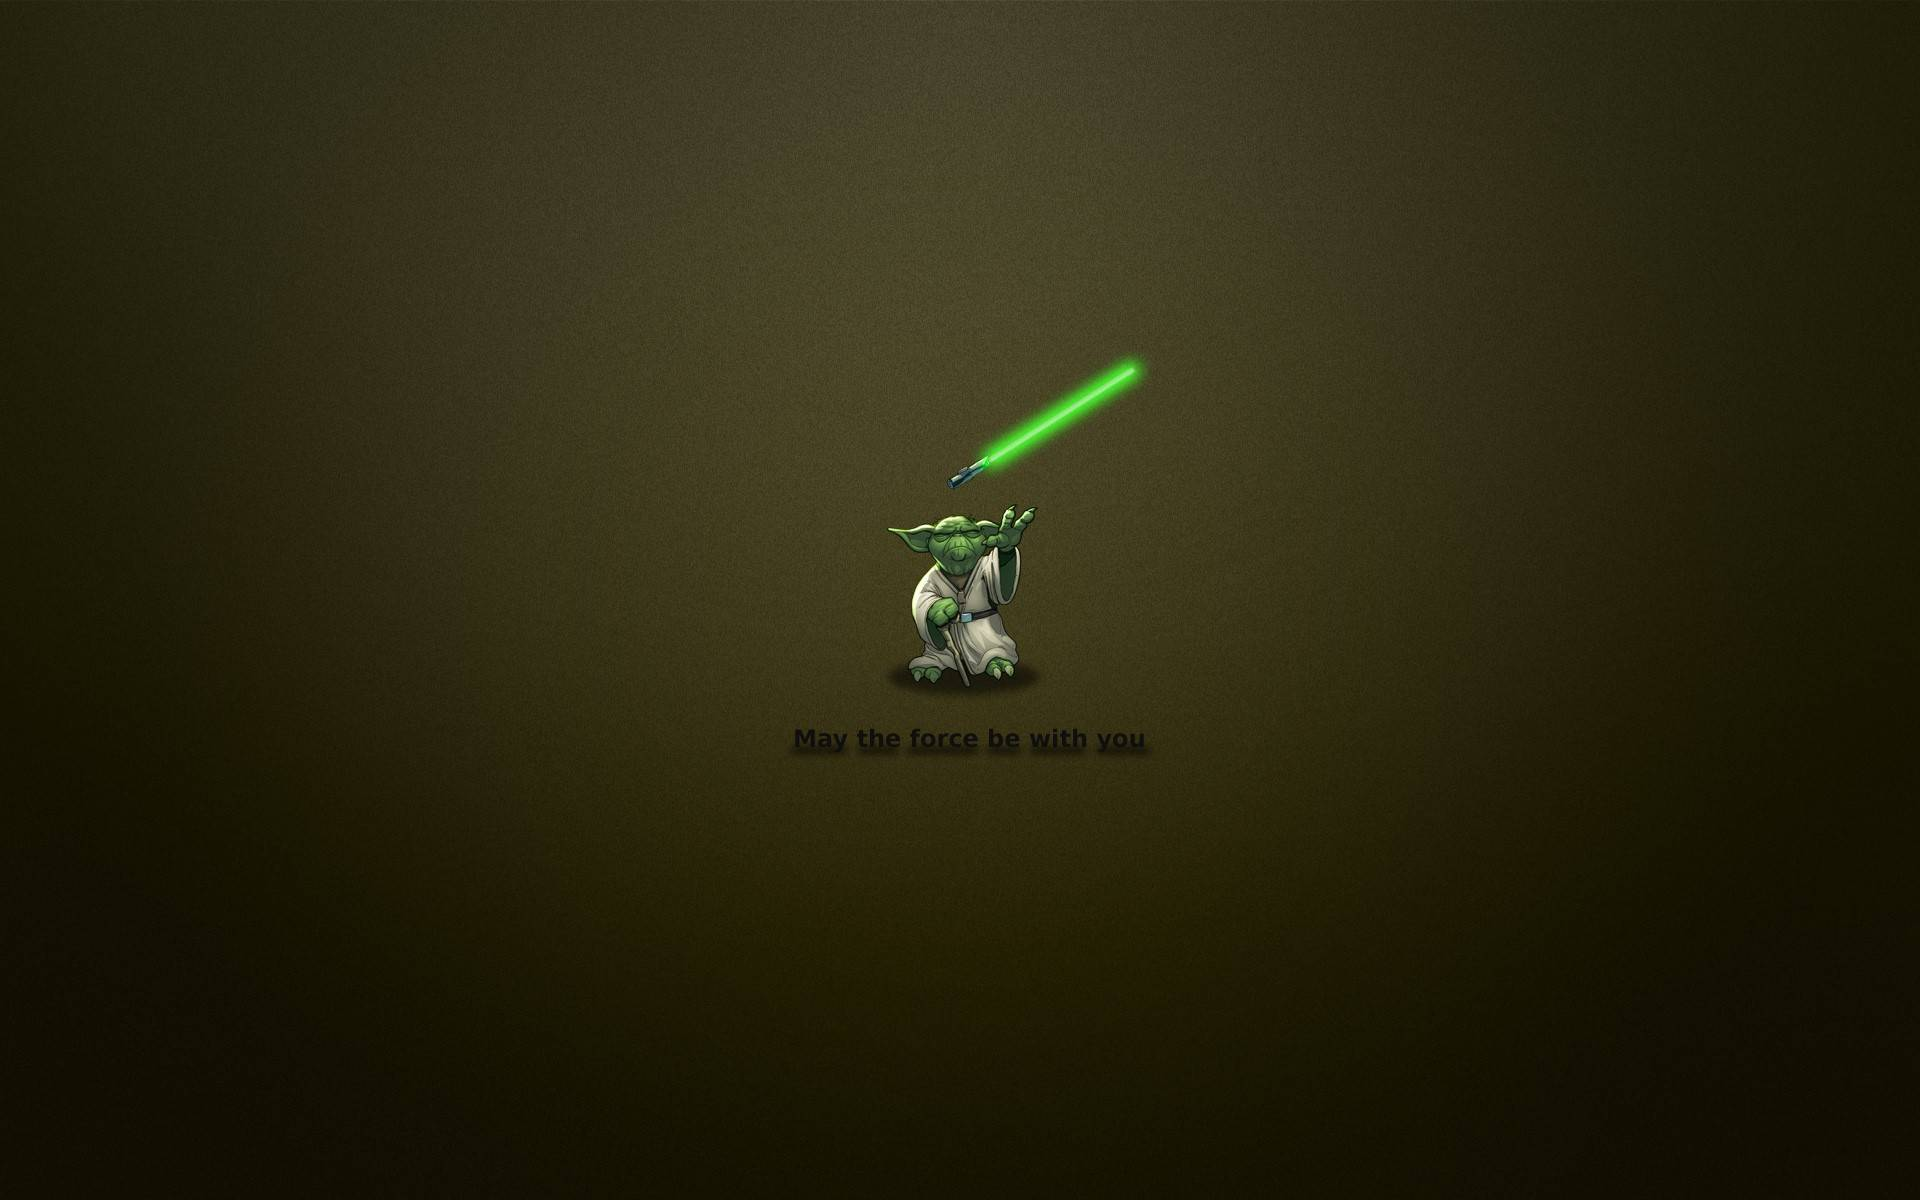 Star wars hd backgrounds pictures images star wars hd widescreen background voltagebd Gallery